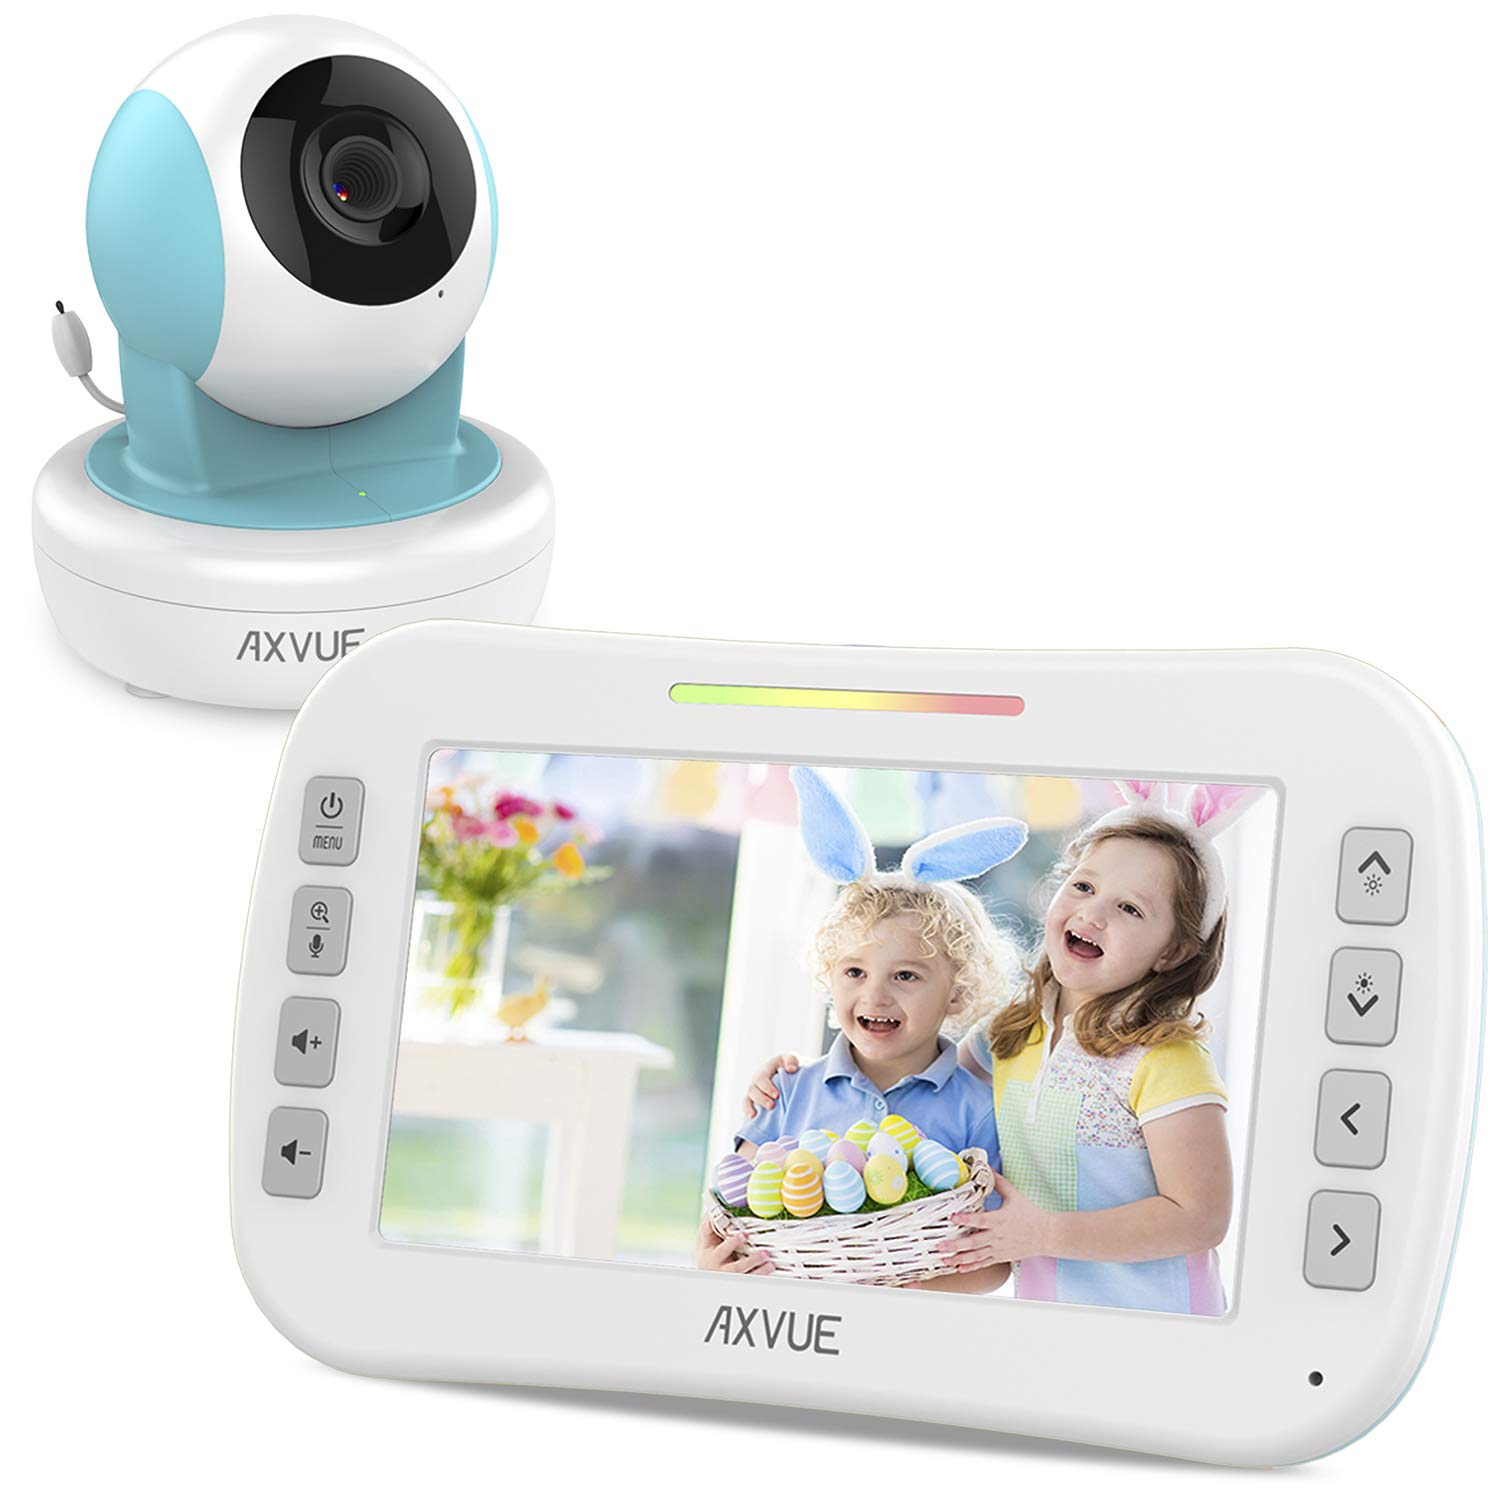 Video Baby Monitor with Remote-Controlled Camera and Clear Large Screen, Two Way Talk, Long Range Connection, No WiFi Needed, Caring for Elder, Home Security Protect by Axvue, Blue, Model E9650-B by AXVUE